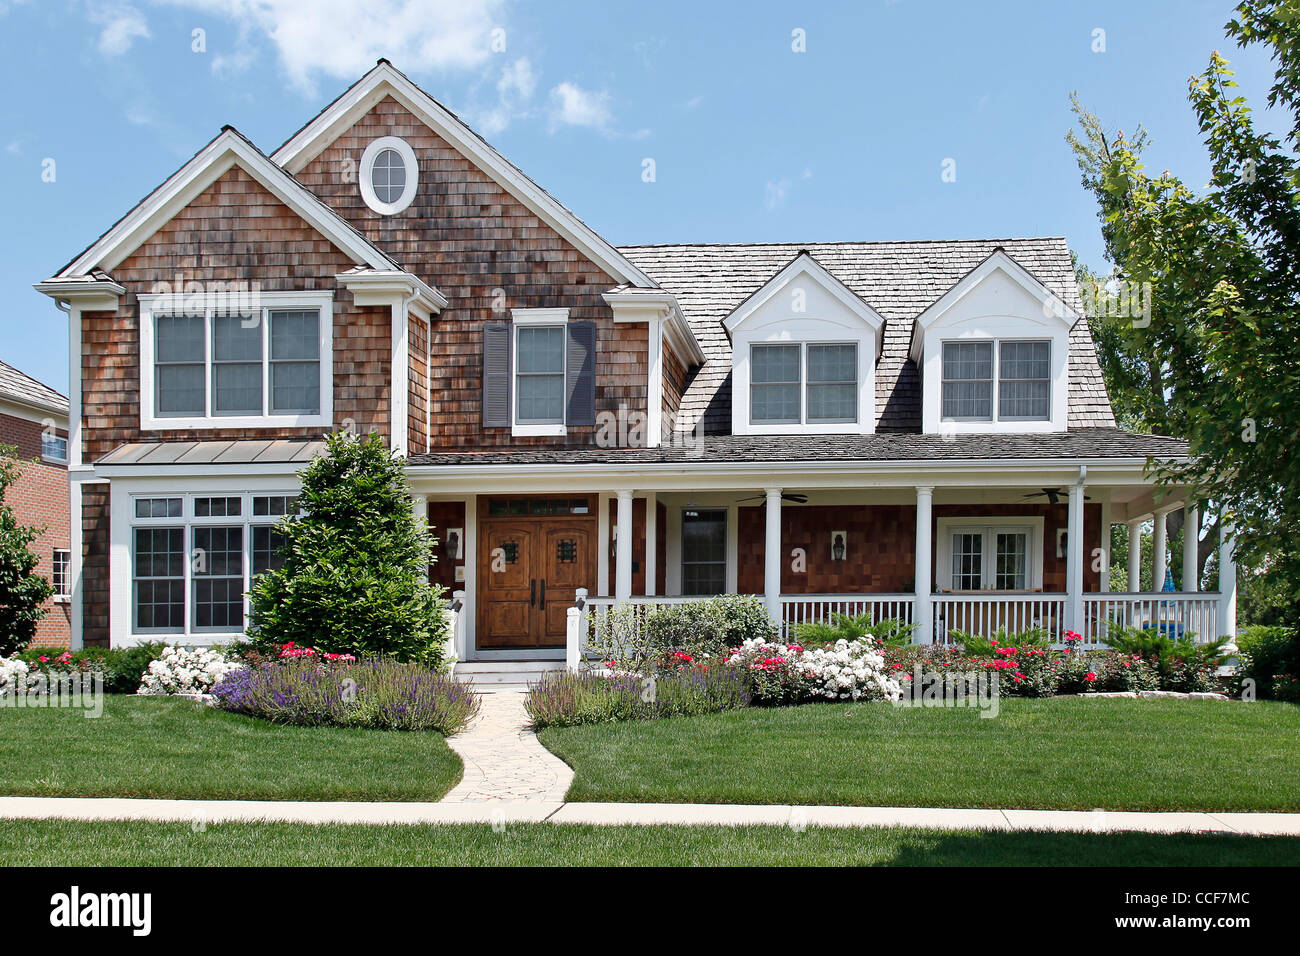 Suburban Home With Flowered Landscaping And Front Porch Stock